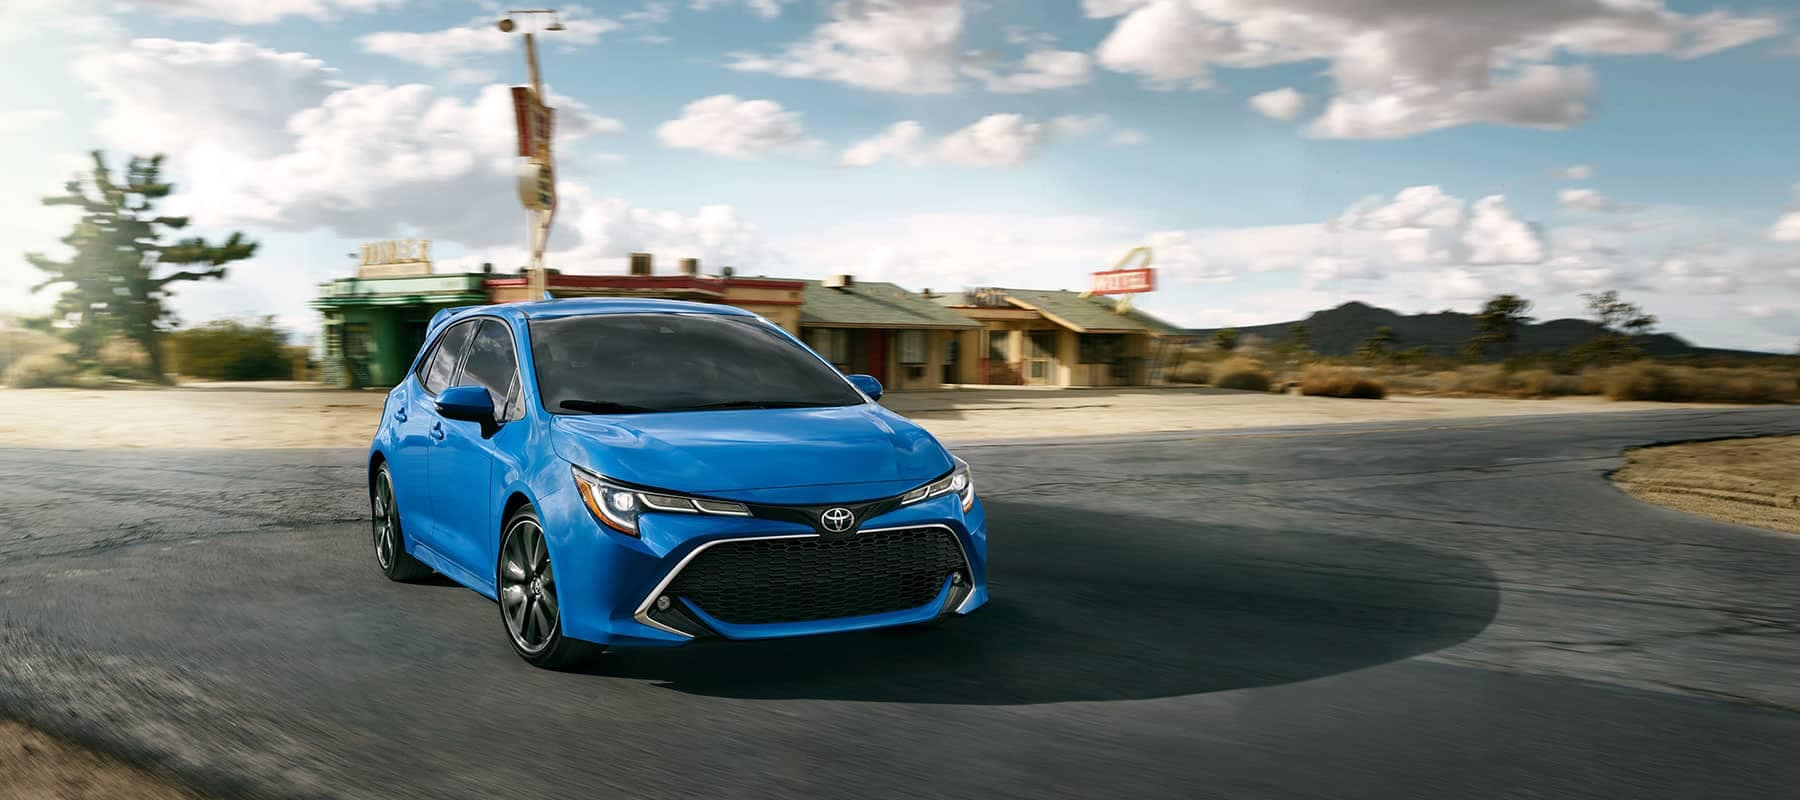 2019-Corolla-Hatchback blue vehicle